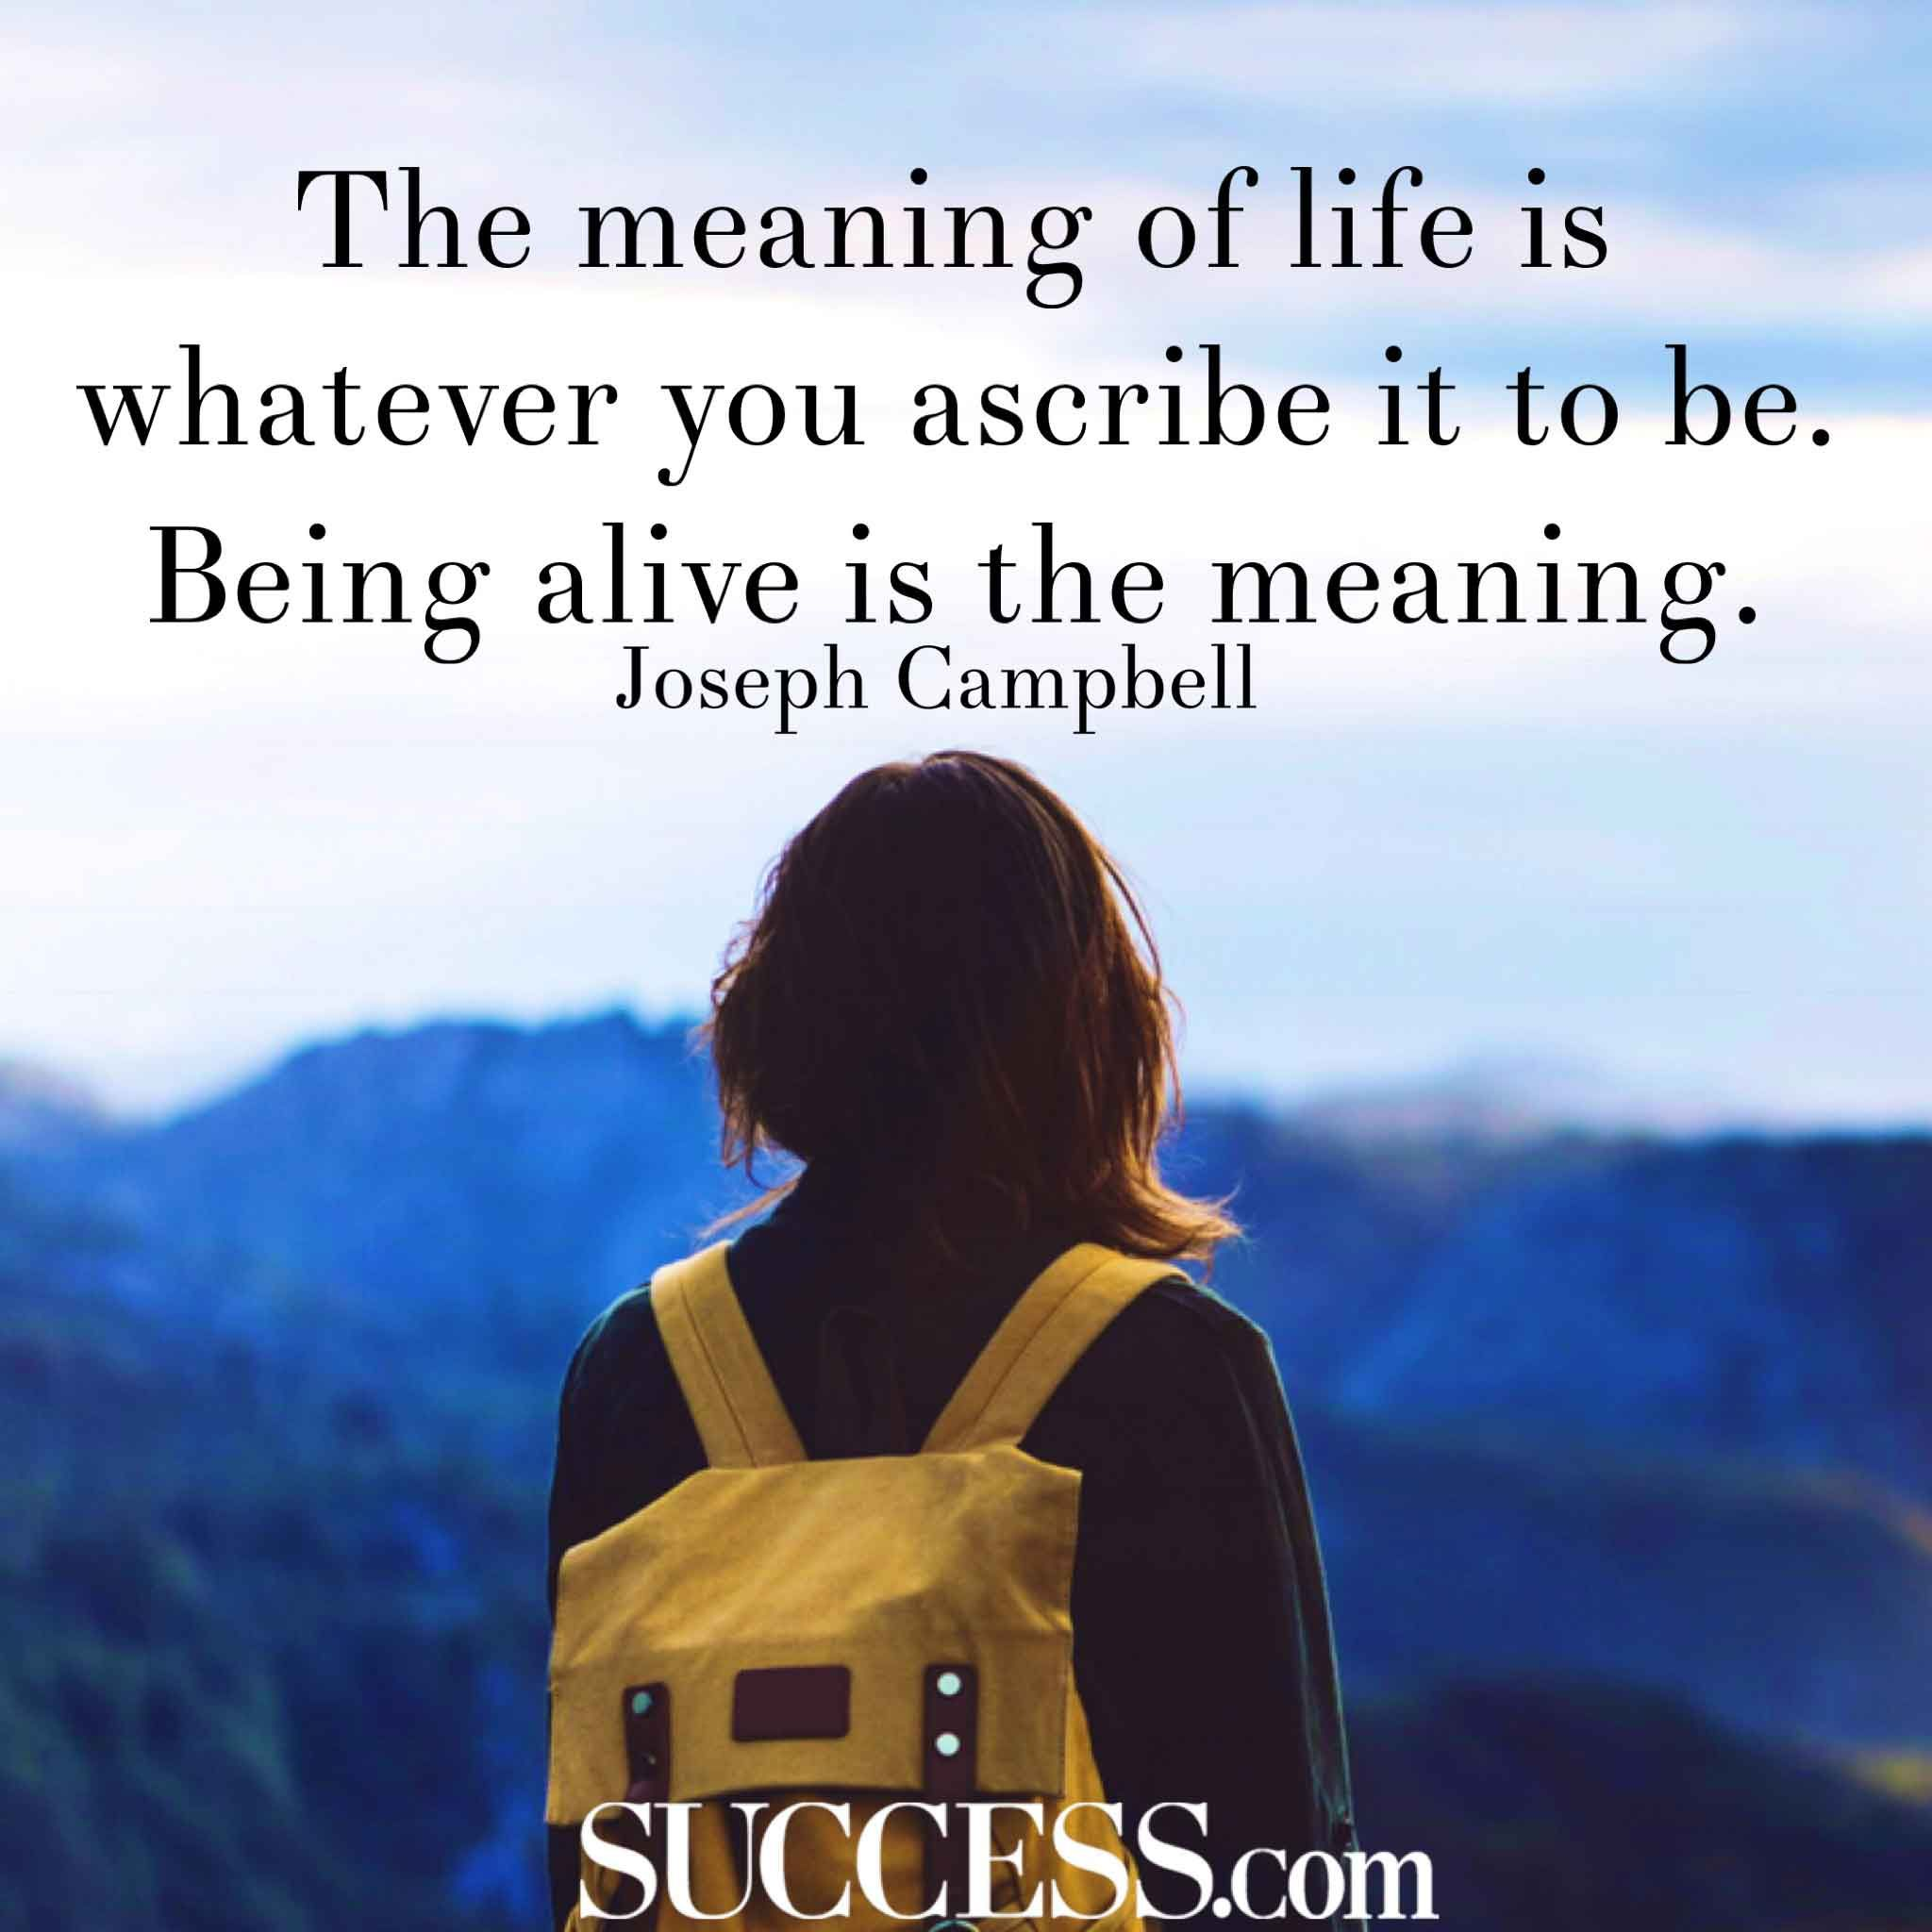 Wise Quotes About Life The Meaning Of Life In 15 Wise Quotes  Success  Self Help .